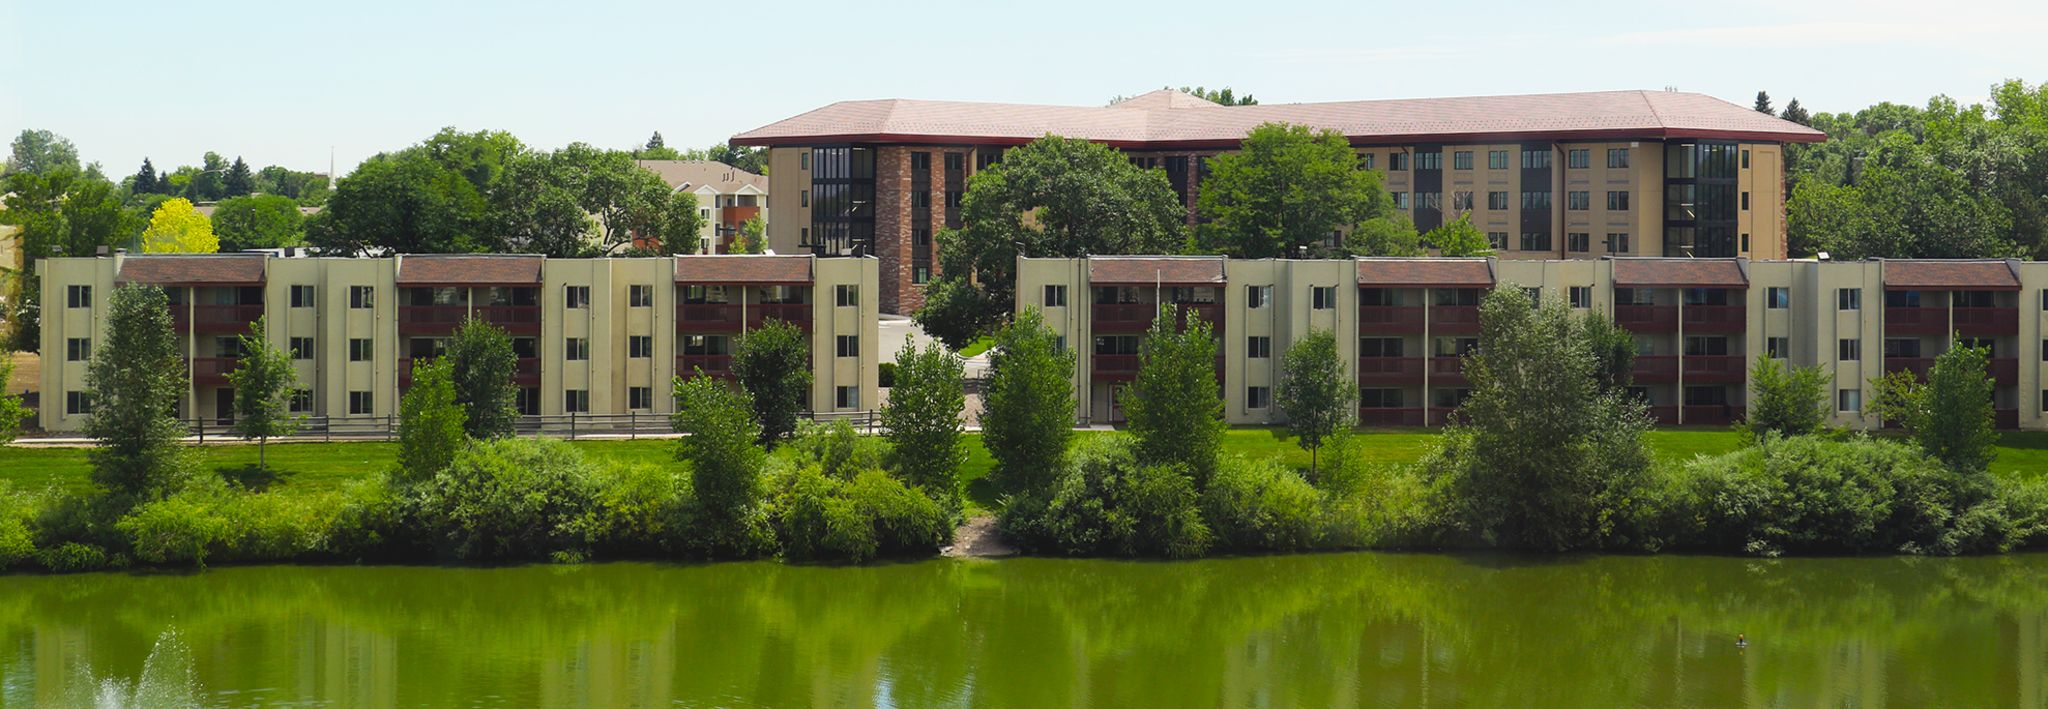 The Harwood and Waite apartments are located on the CCU Lakewood campus.